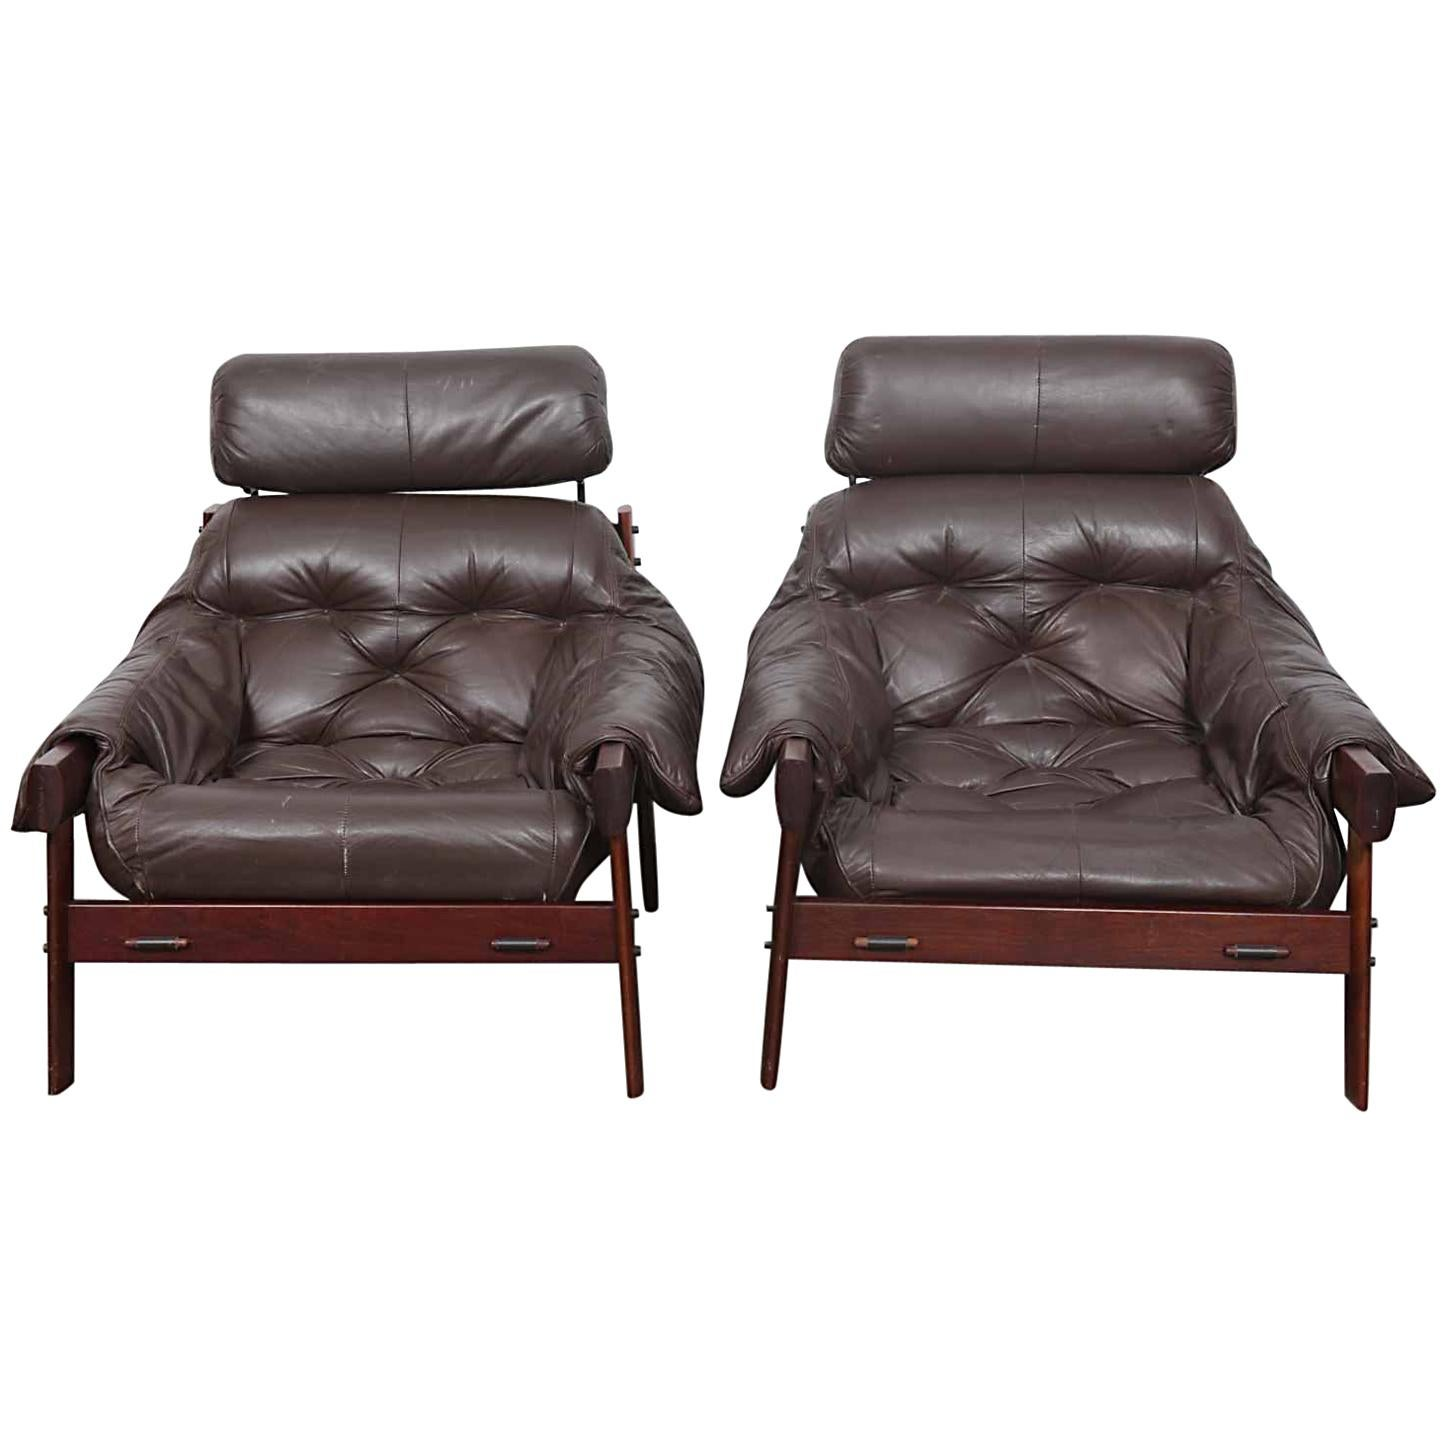 Pair Of Rich Dark Brown Leather Percival Lafer High Back Lounge Chairs